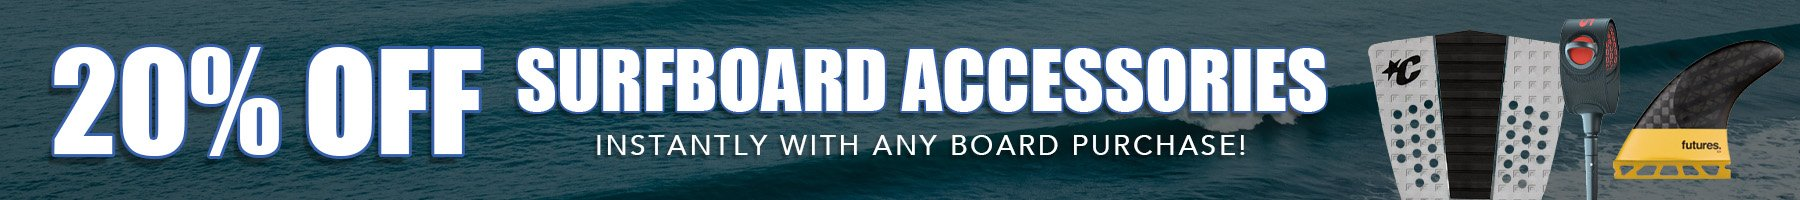 20% off Surfboard Accessories